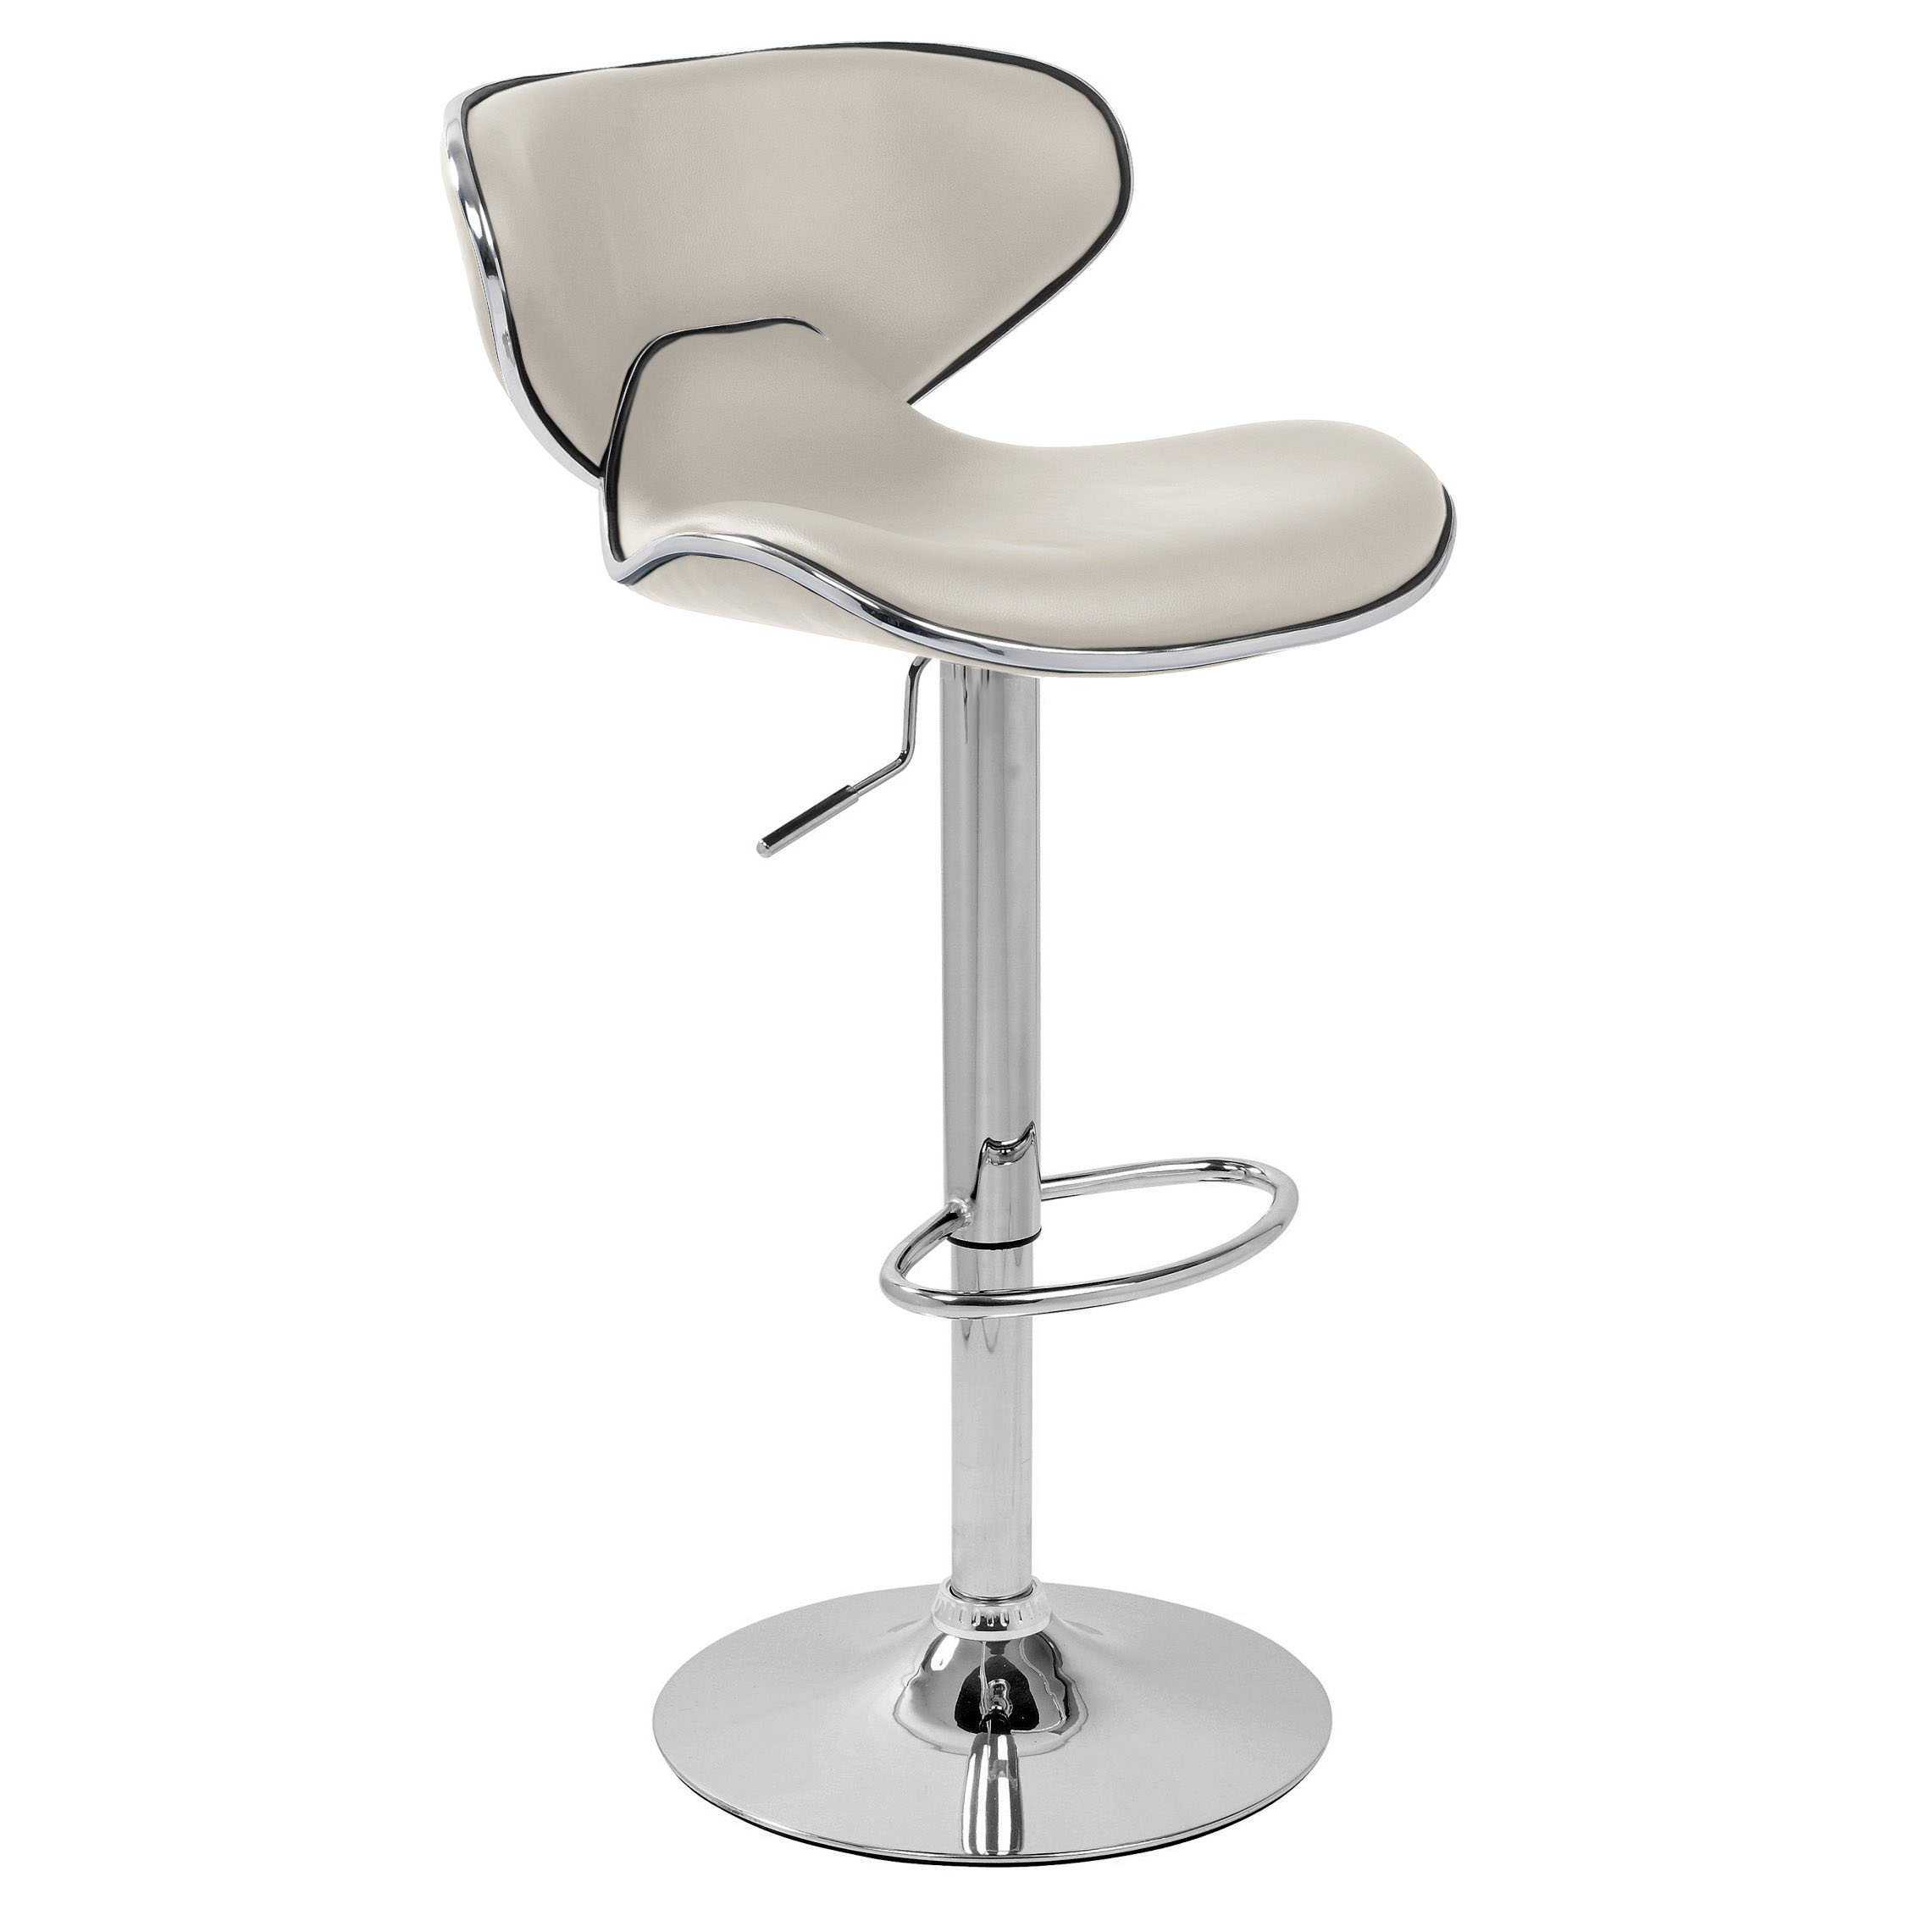 Carcaso Bar Stool - White